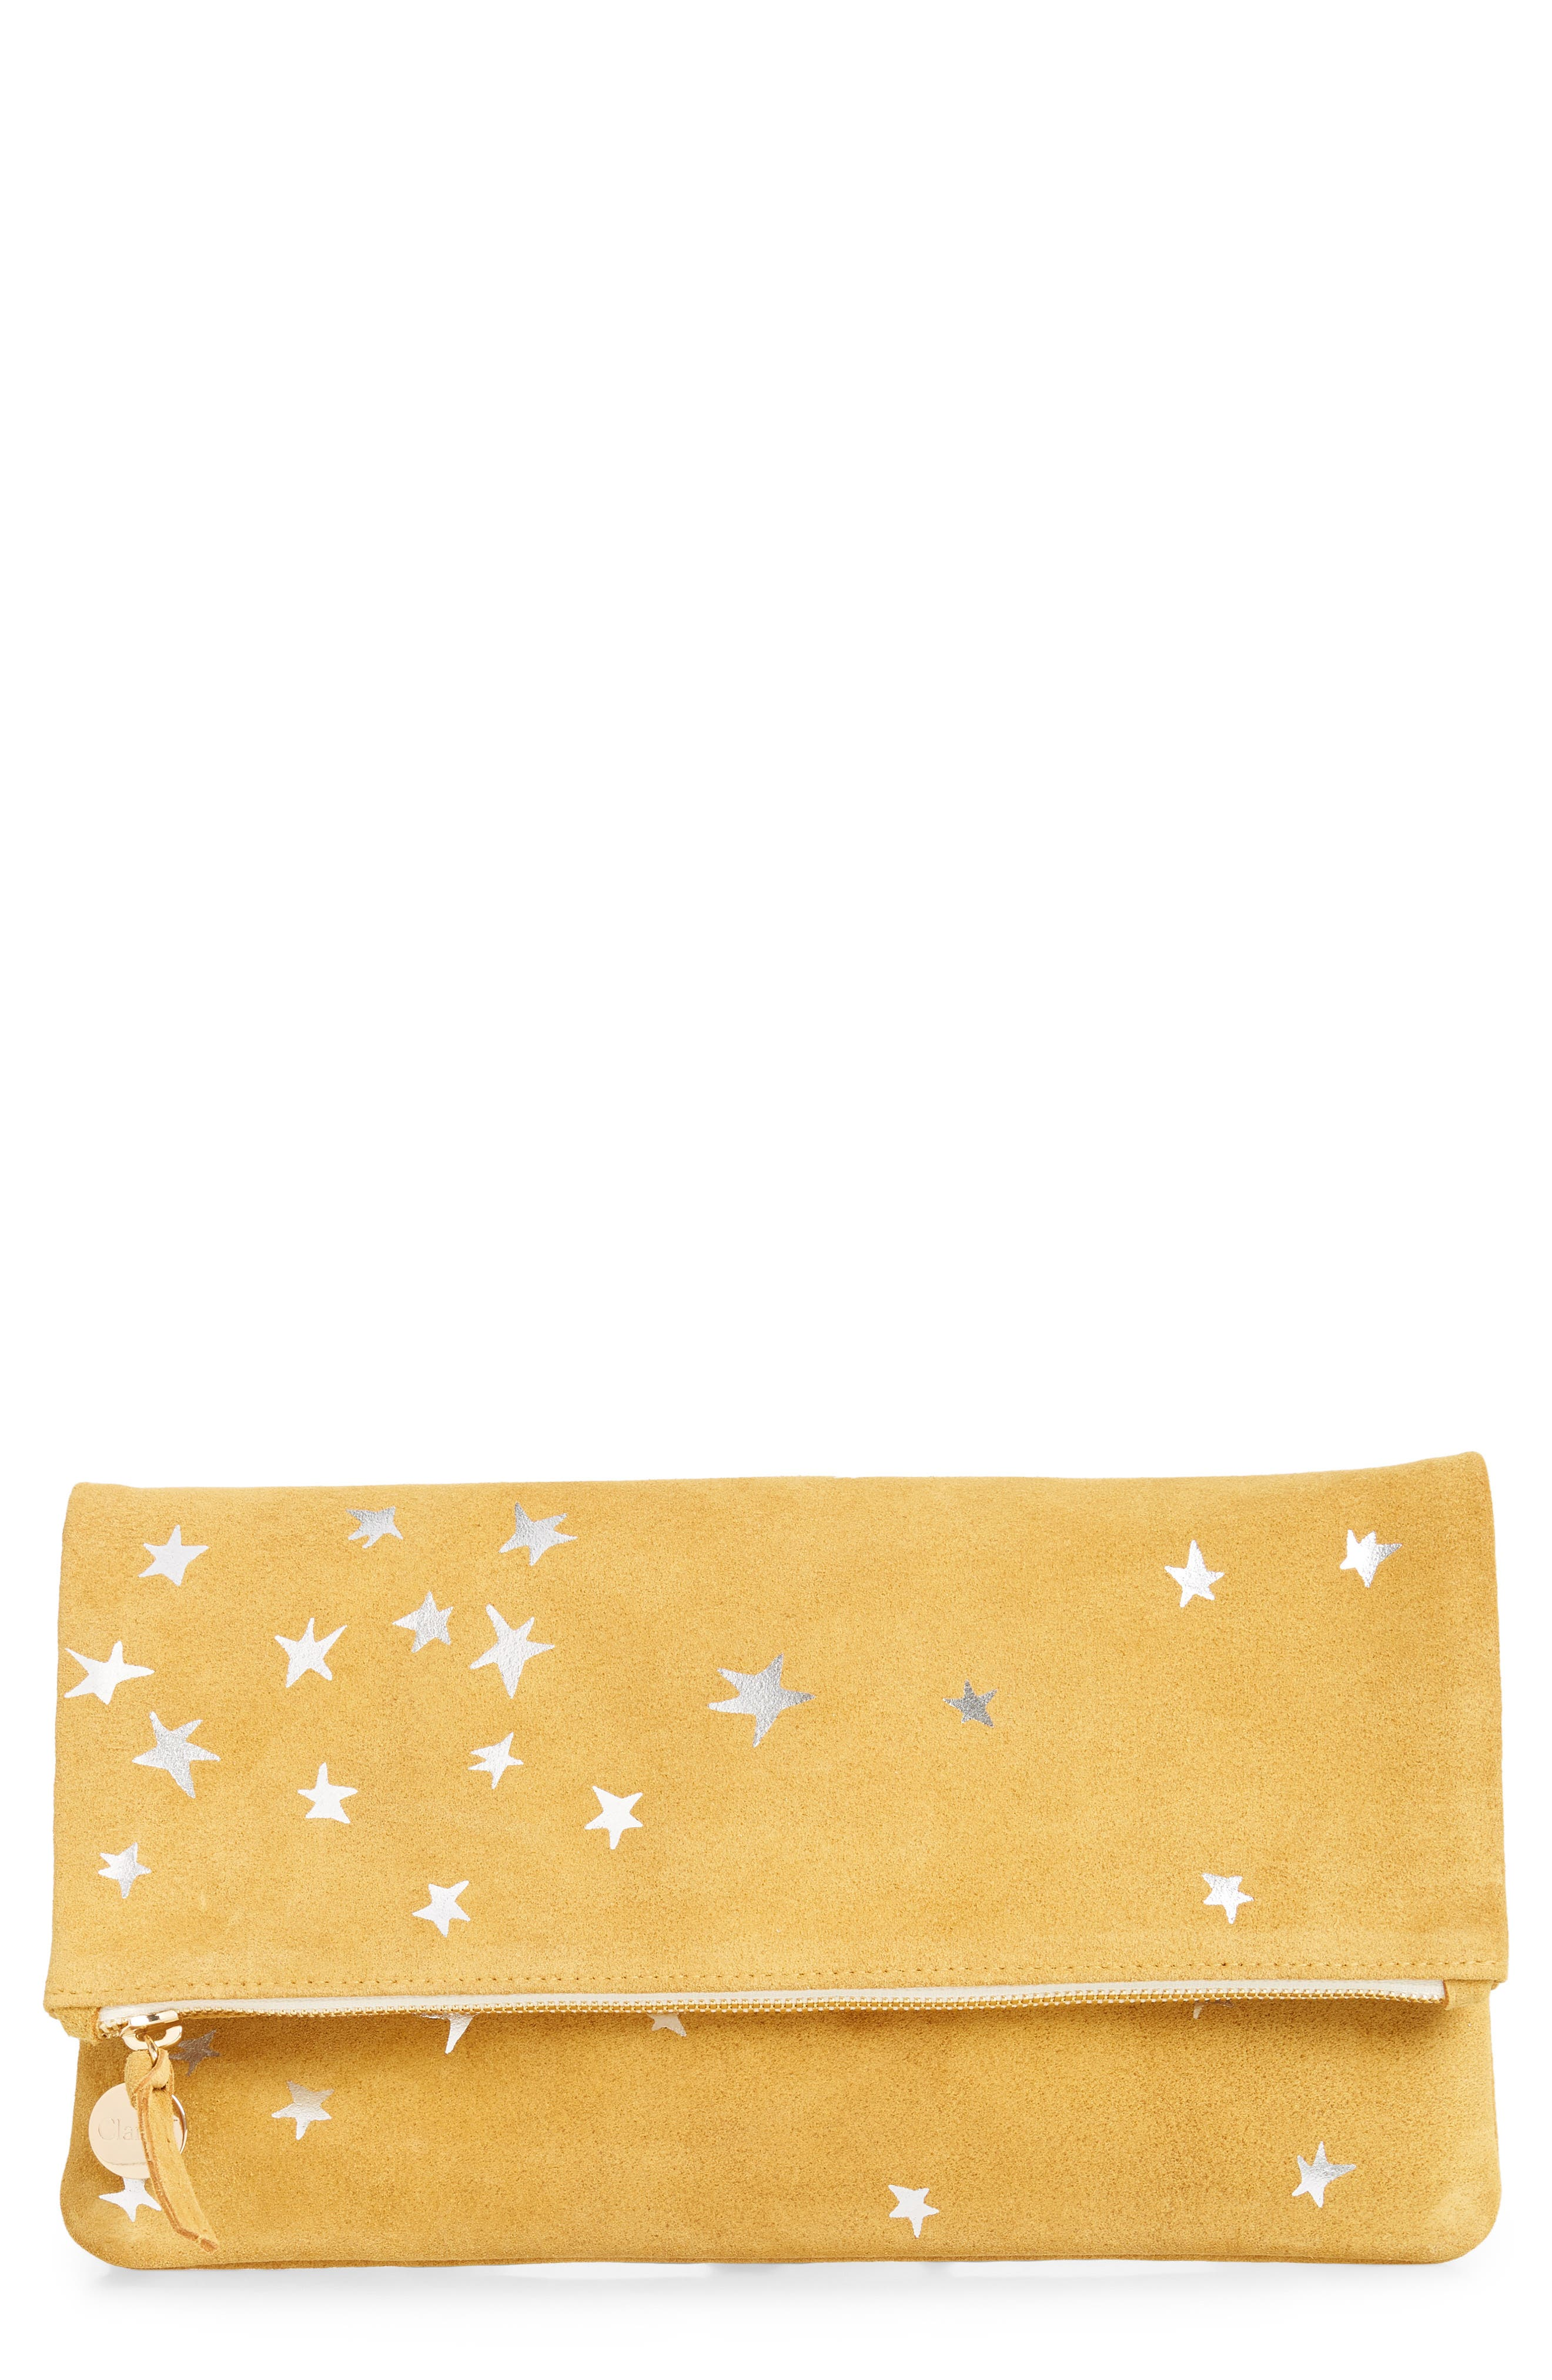 CLARE V Margot Star Print Foldover Suede Clutch - Yellow in Mustard Stars